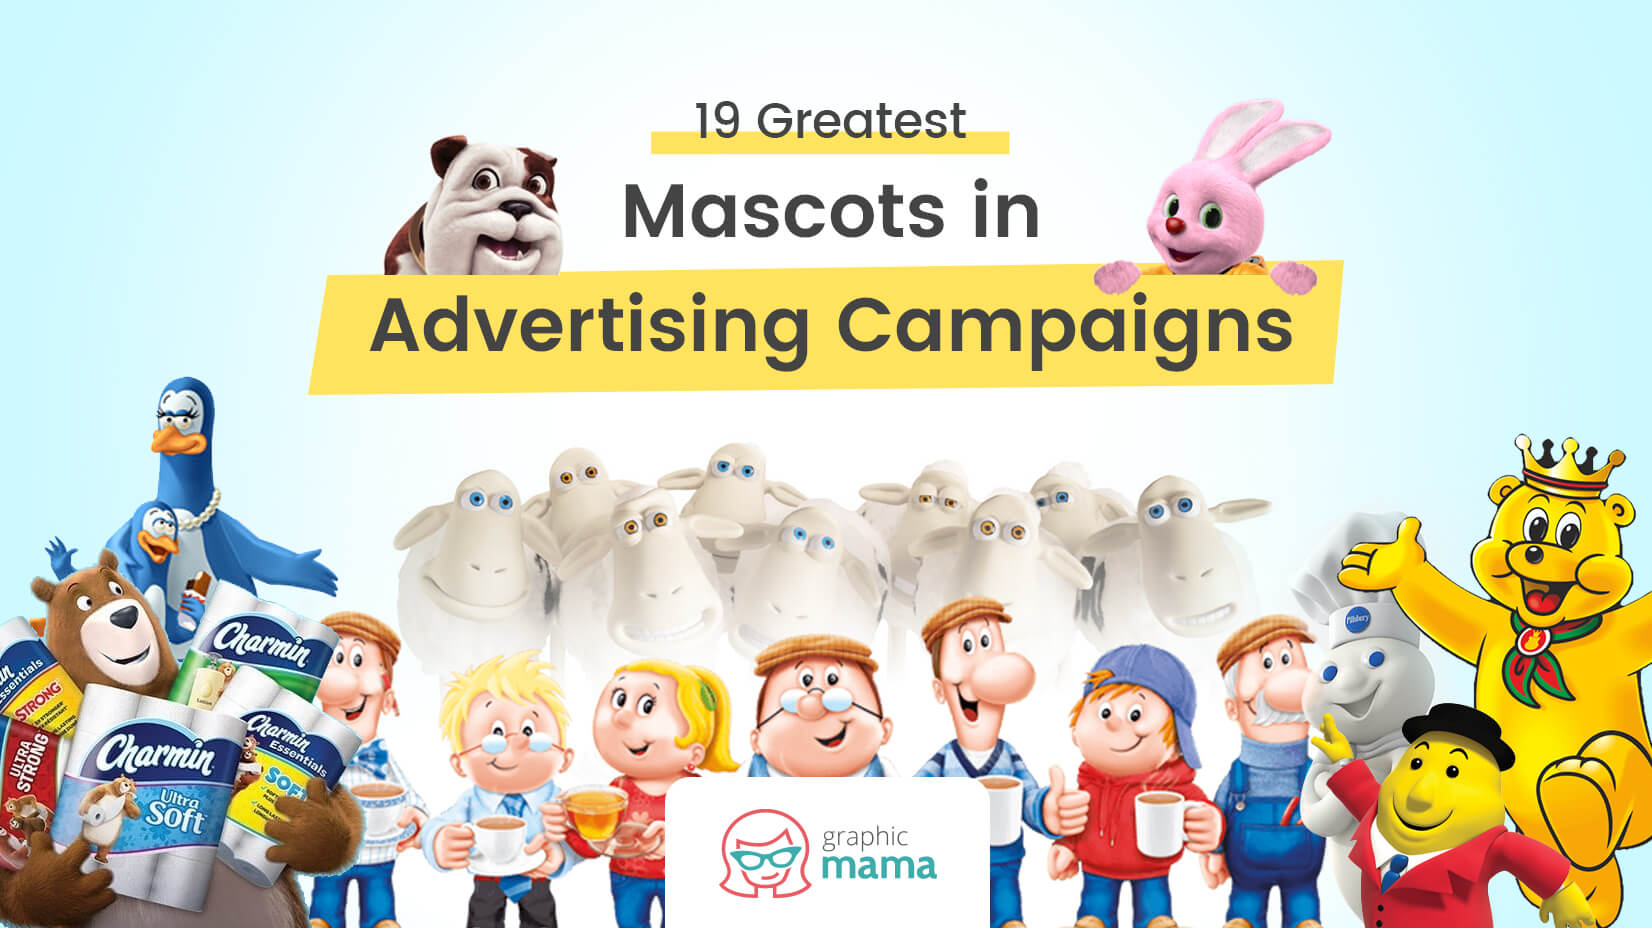 000ada5c87 19 Greatest Mascots in Advertising Campaigns + Today's Trends